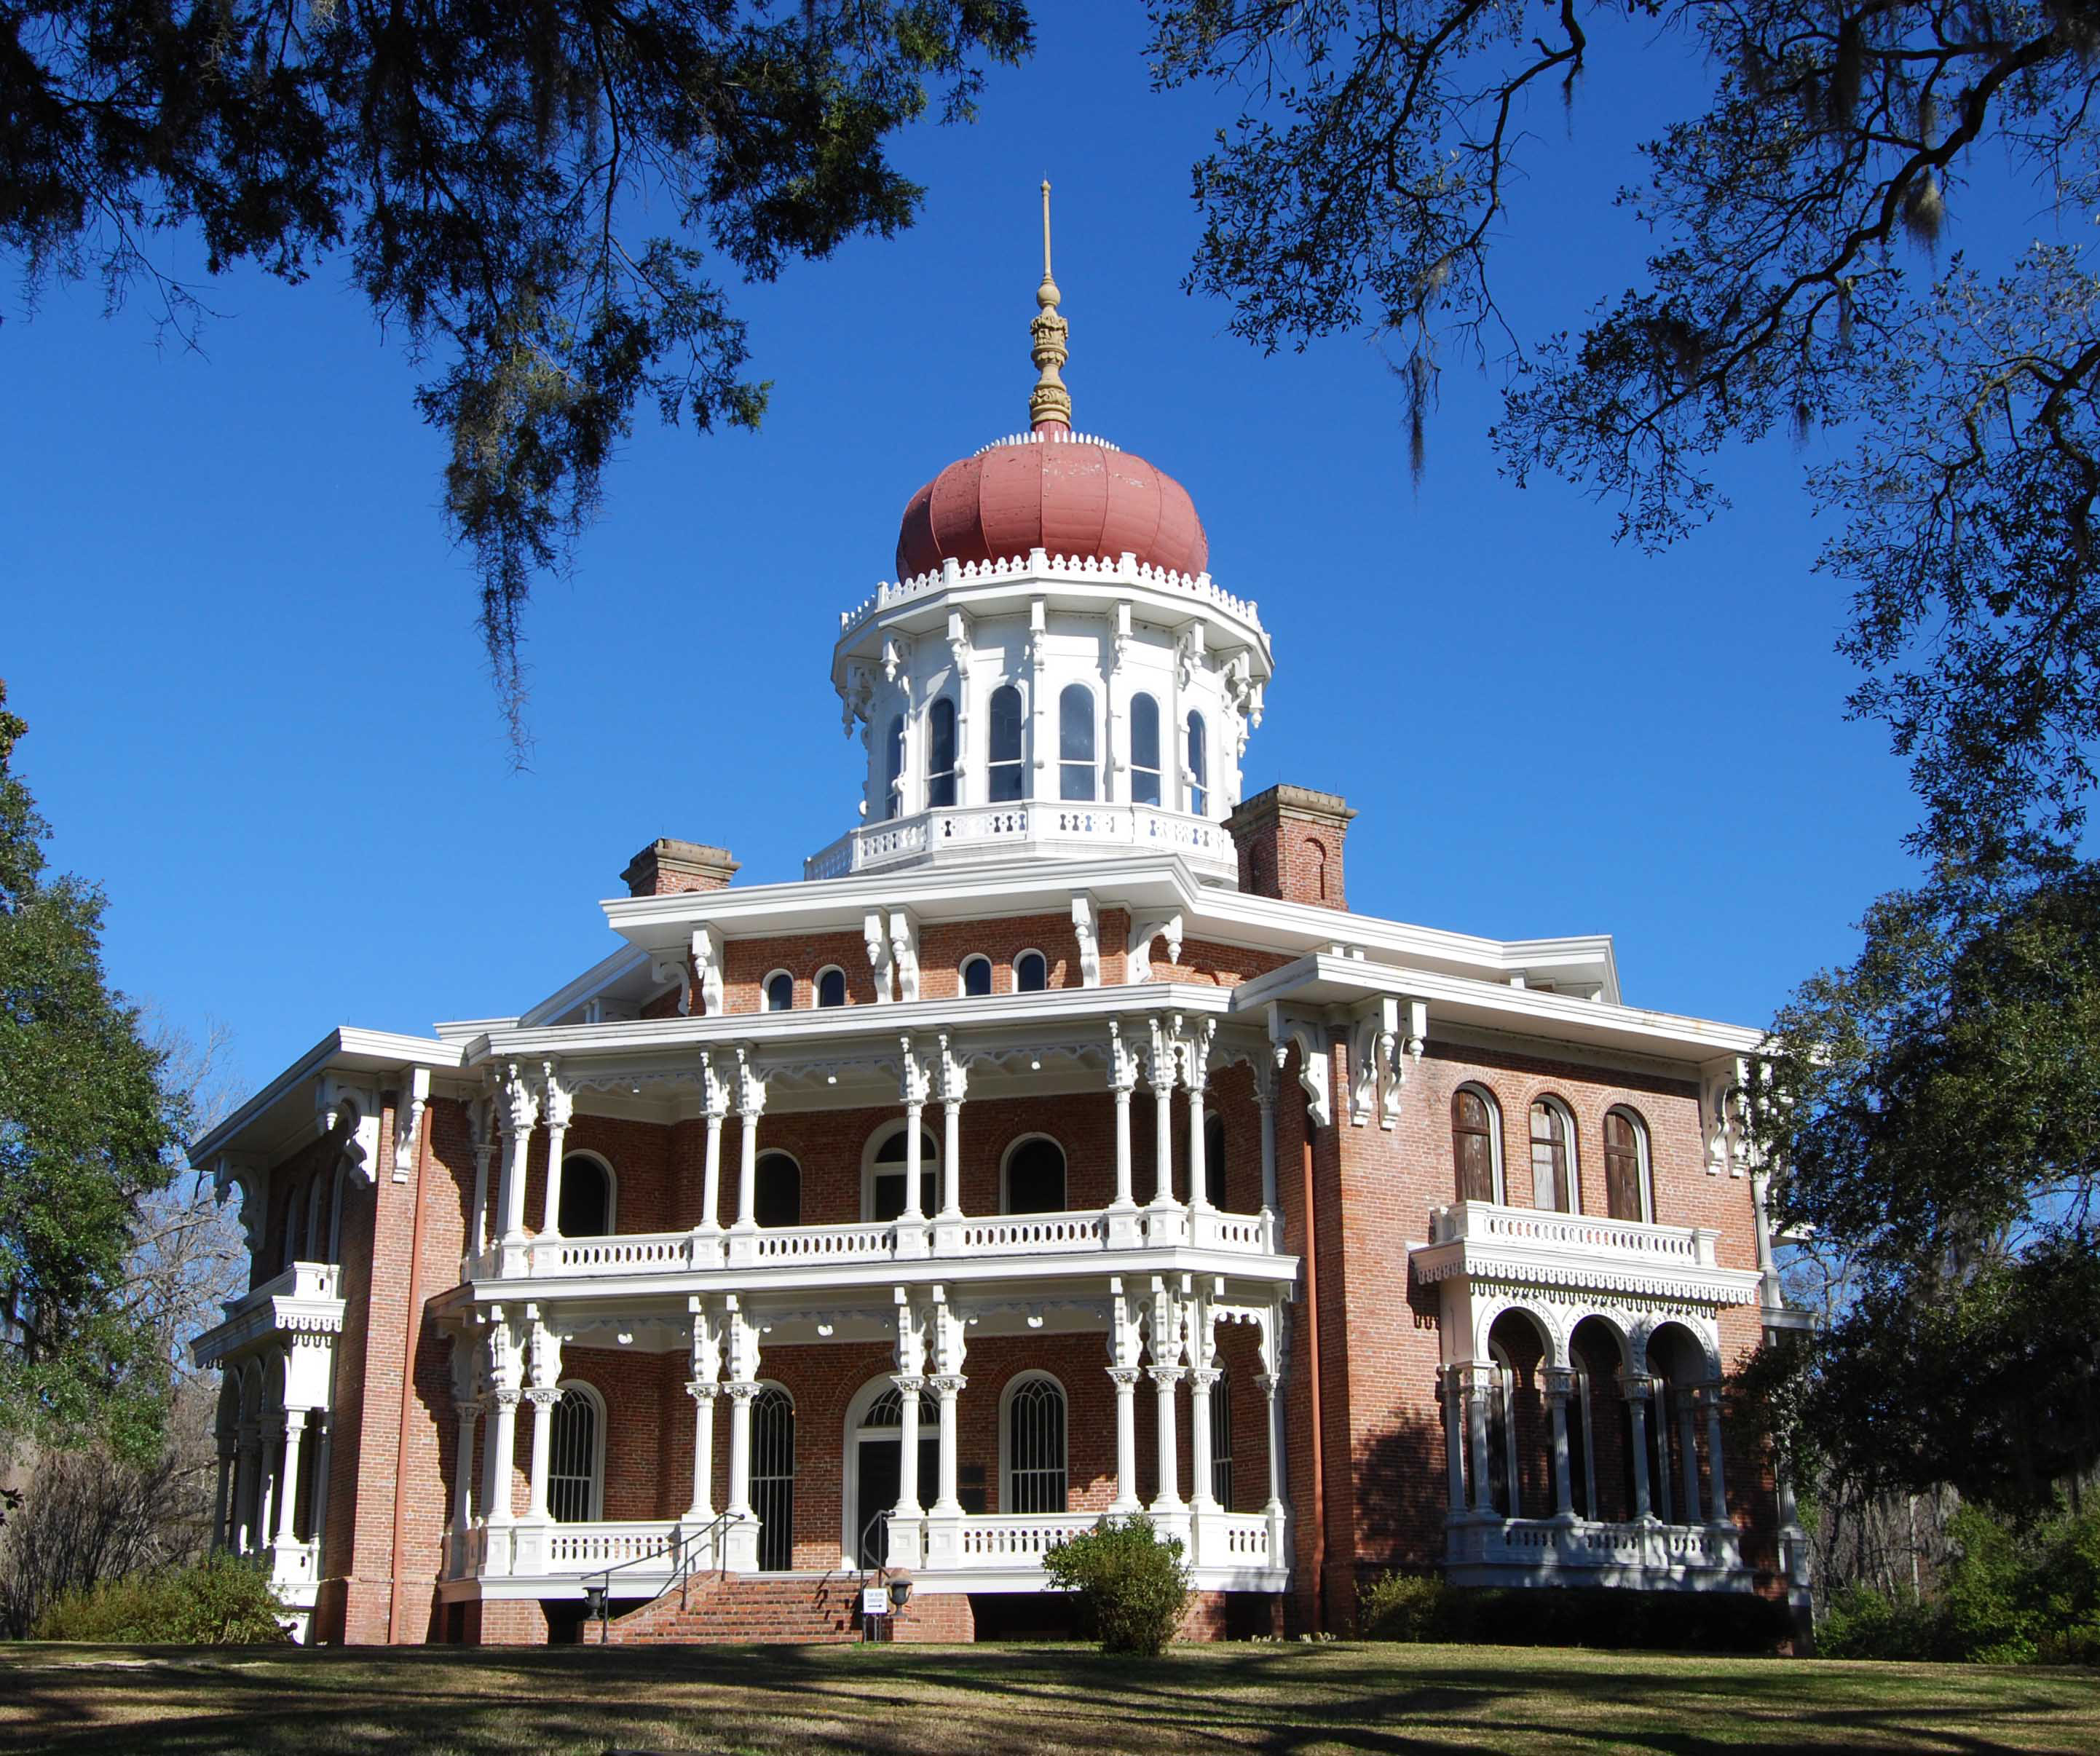 Longwood mansion. Photo Courtesy of visitnatchez.org.